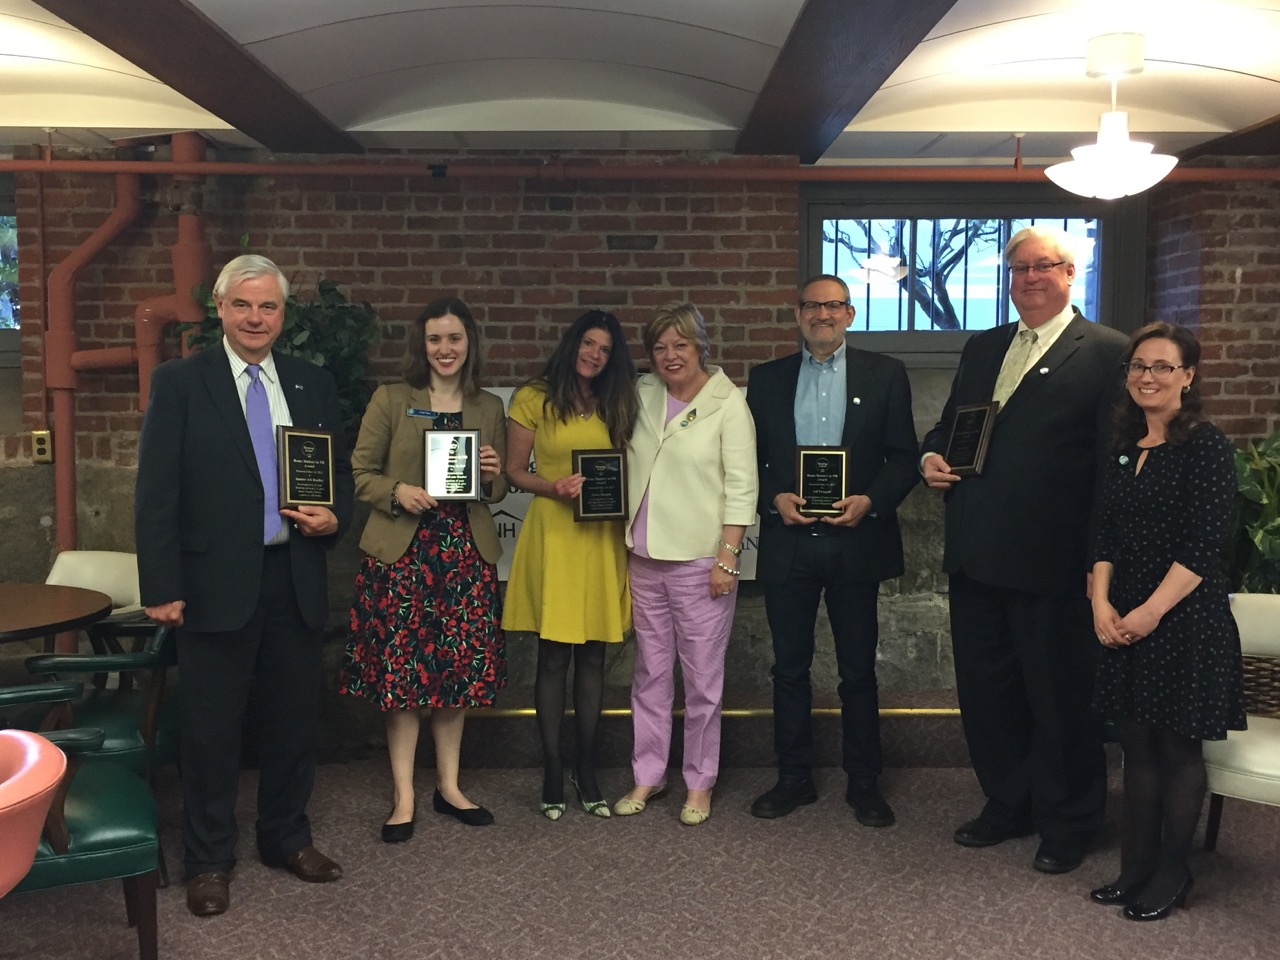 Tricia Murphy: Recipient of the 2017 Home Matters in NH Advocate award